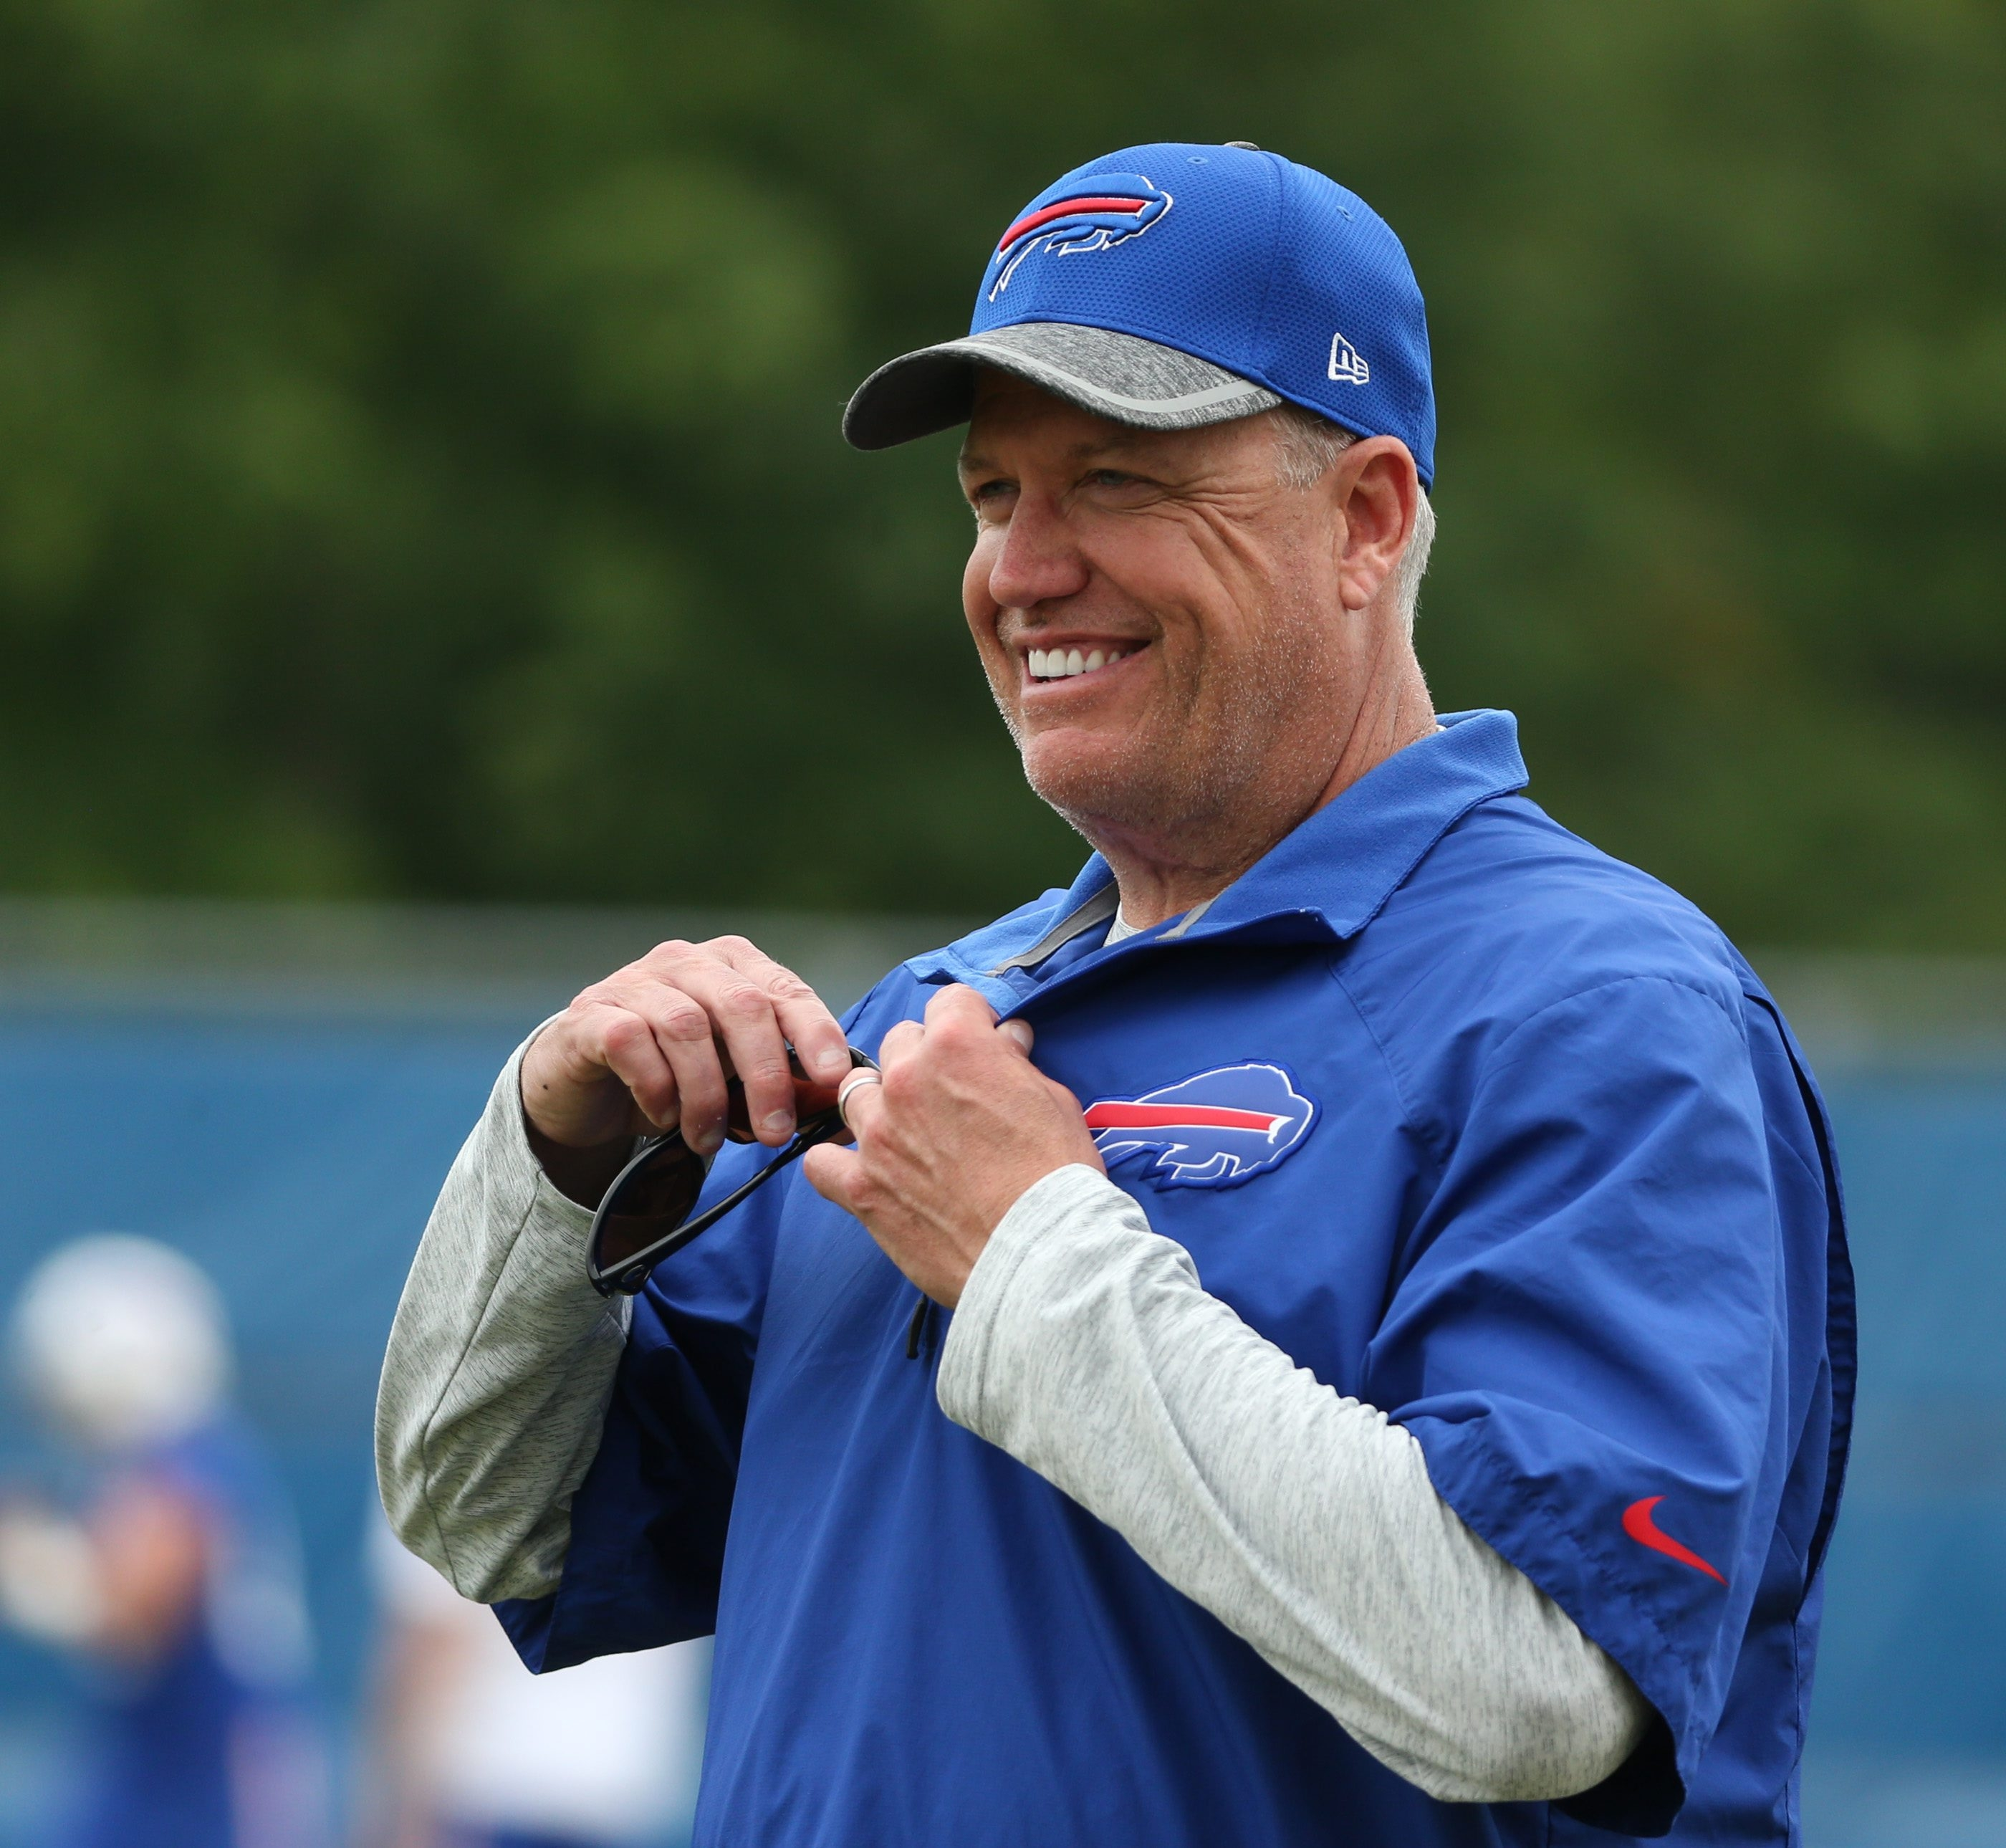 Buffalo Bills head coach Rex Ryan enjoys what he sees  during the third and final day of the Buffalo Bills mandatory minicamp at ADPRO Sports Training Center in Buffalo,NY on Thursday, June 16, 2016.  (James P. McCoy/ Buffalo News)